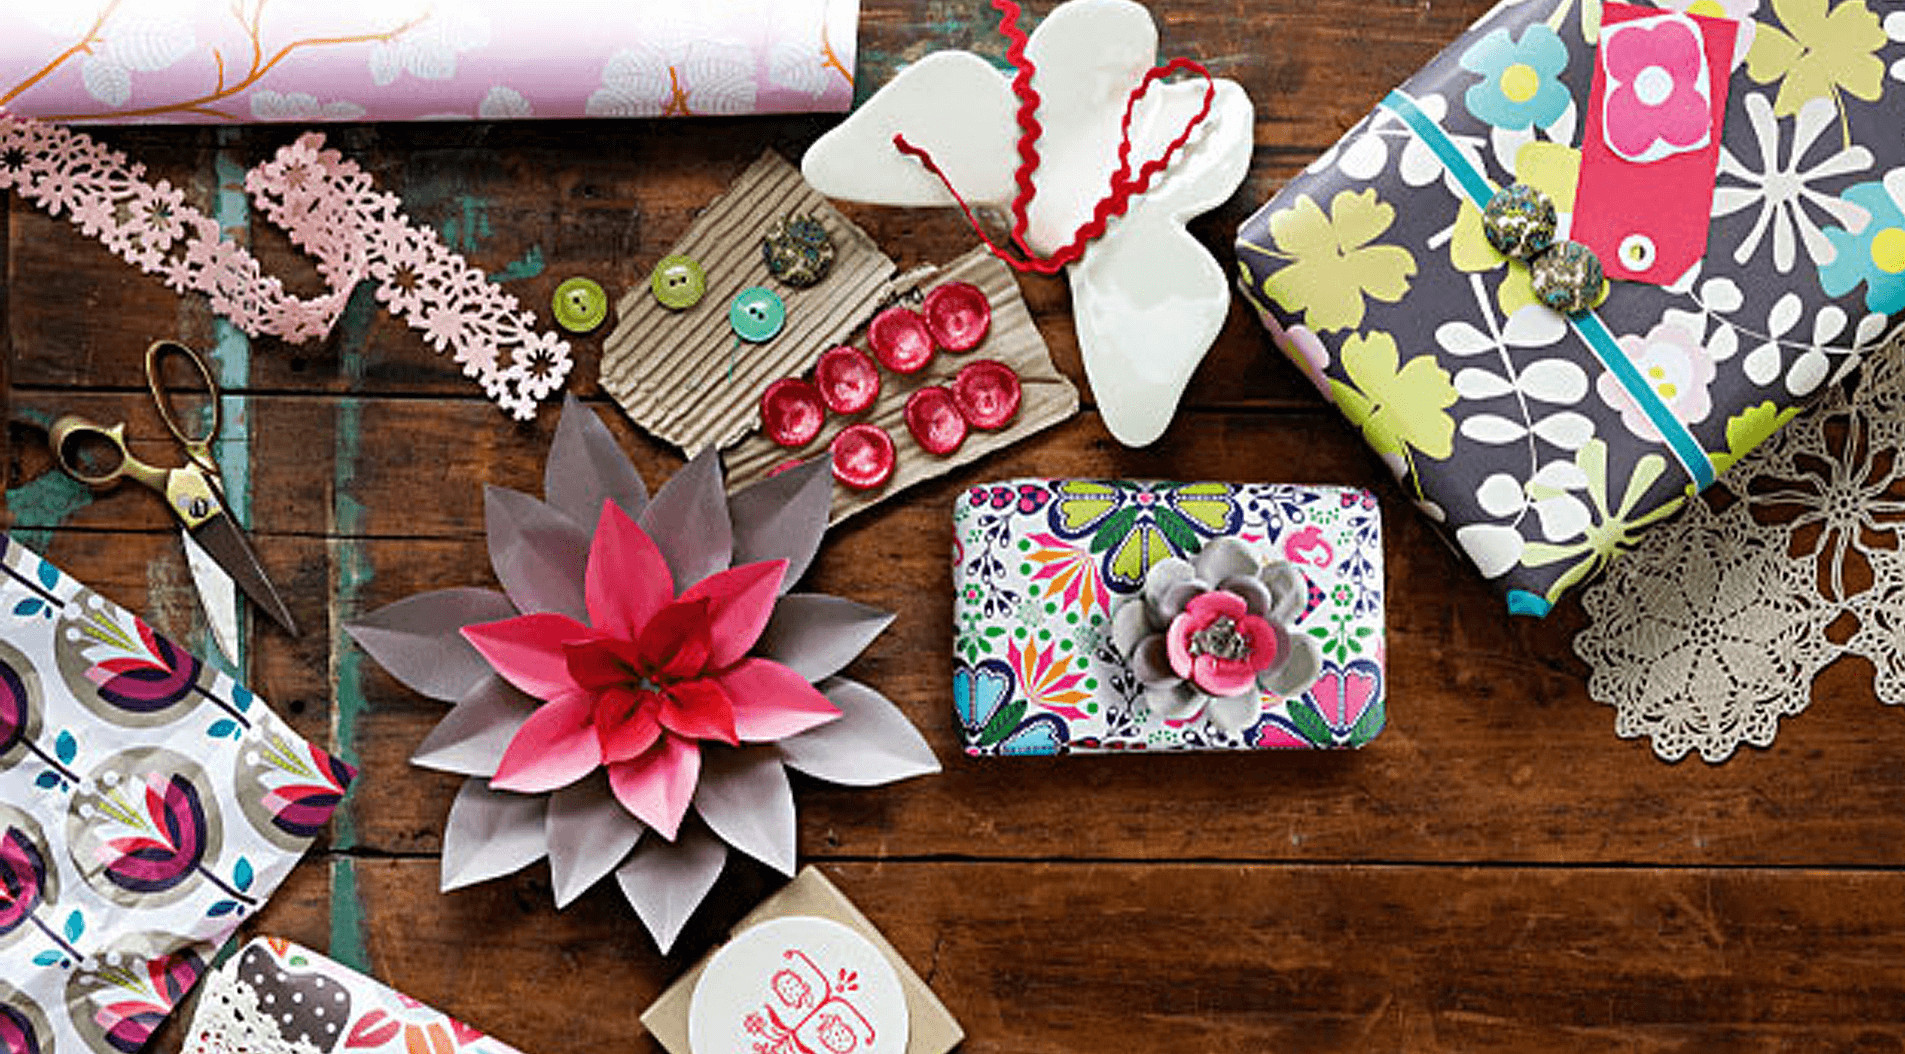 Best Gift Wrapping Ideas  Best Simple & Creative Gift Wrapping Ideas in Singapore